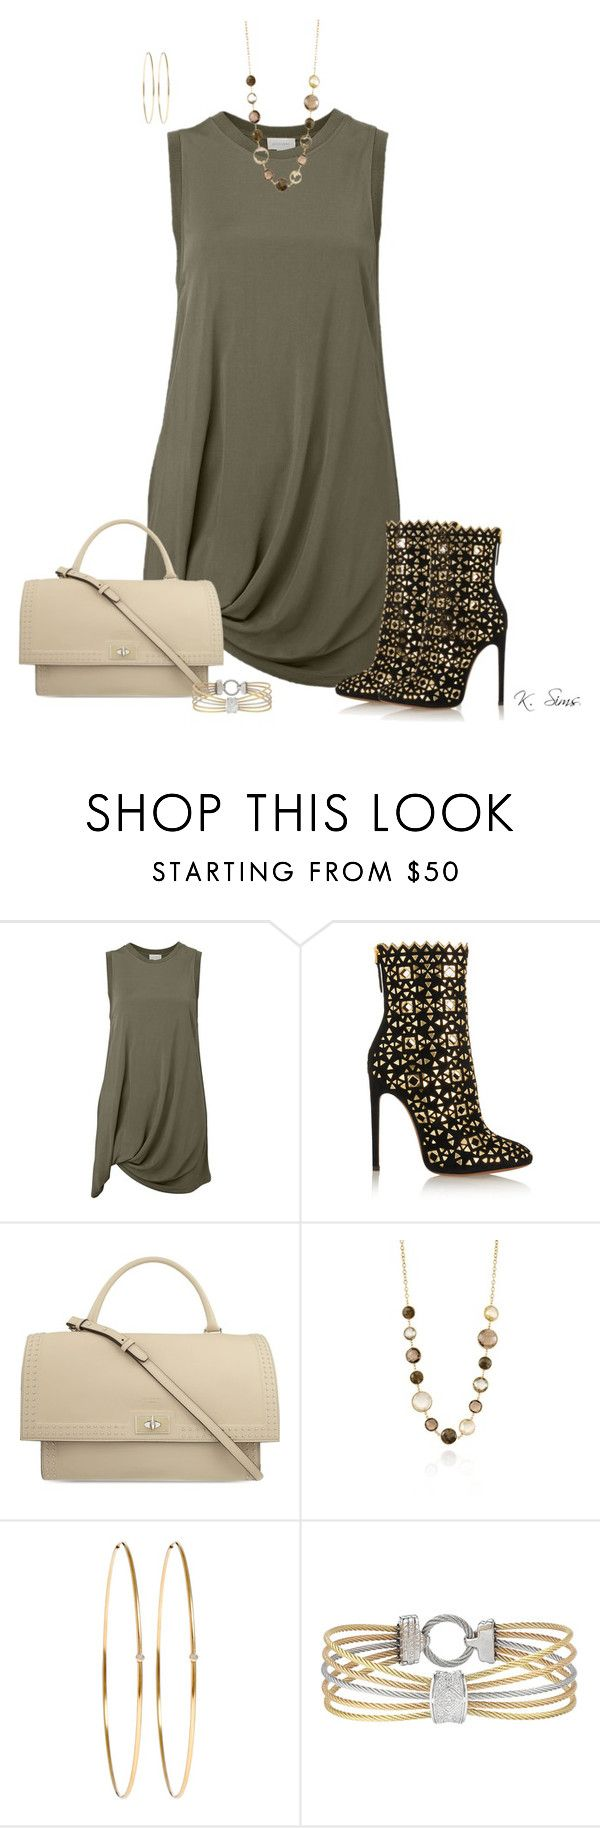 """""""It's a top, but...."""" by ksims-1 ❤ liked on Polyvore featuring Witchery, Alaïa, Givenchy, PIARA by Elaine J, Jennifer Meyer Jewelry and Alor"""